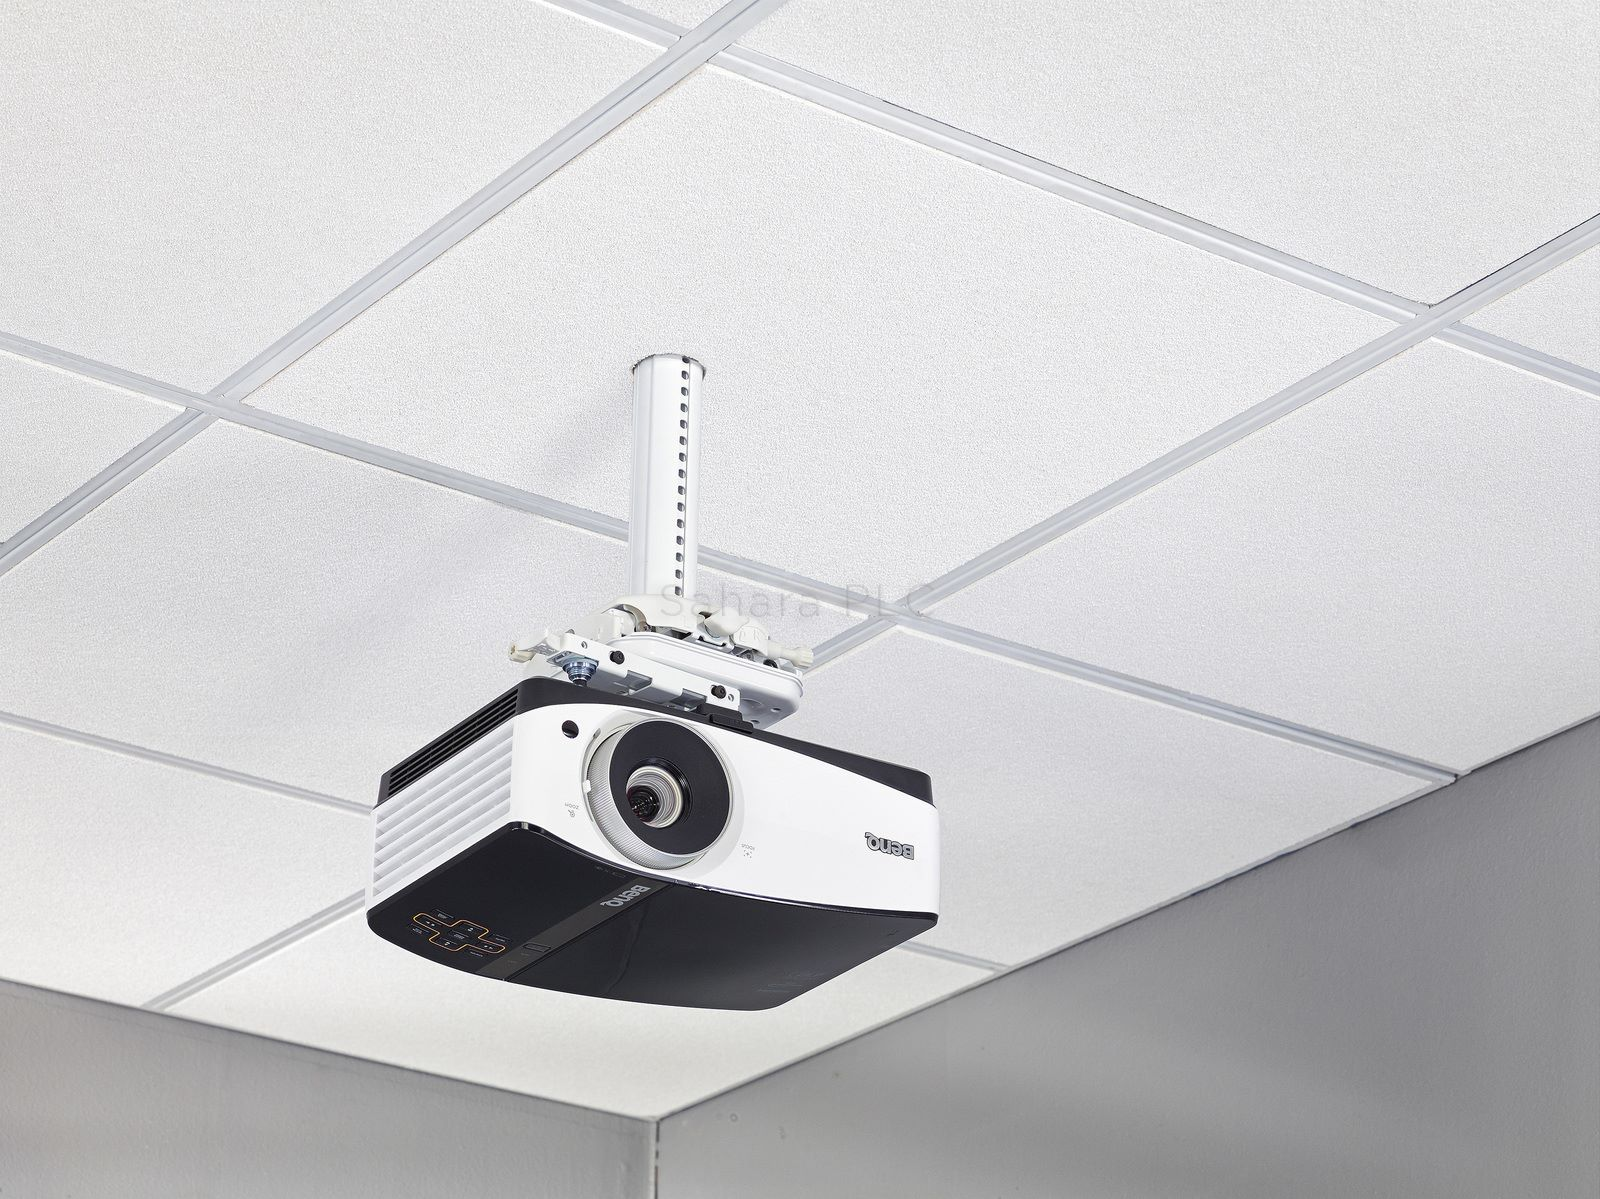 Chief Suspended Ceiling Projector System Sysauw Sahara Av